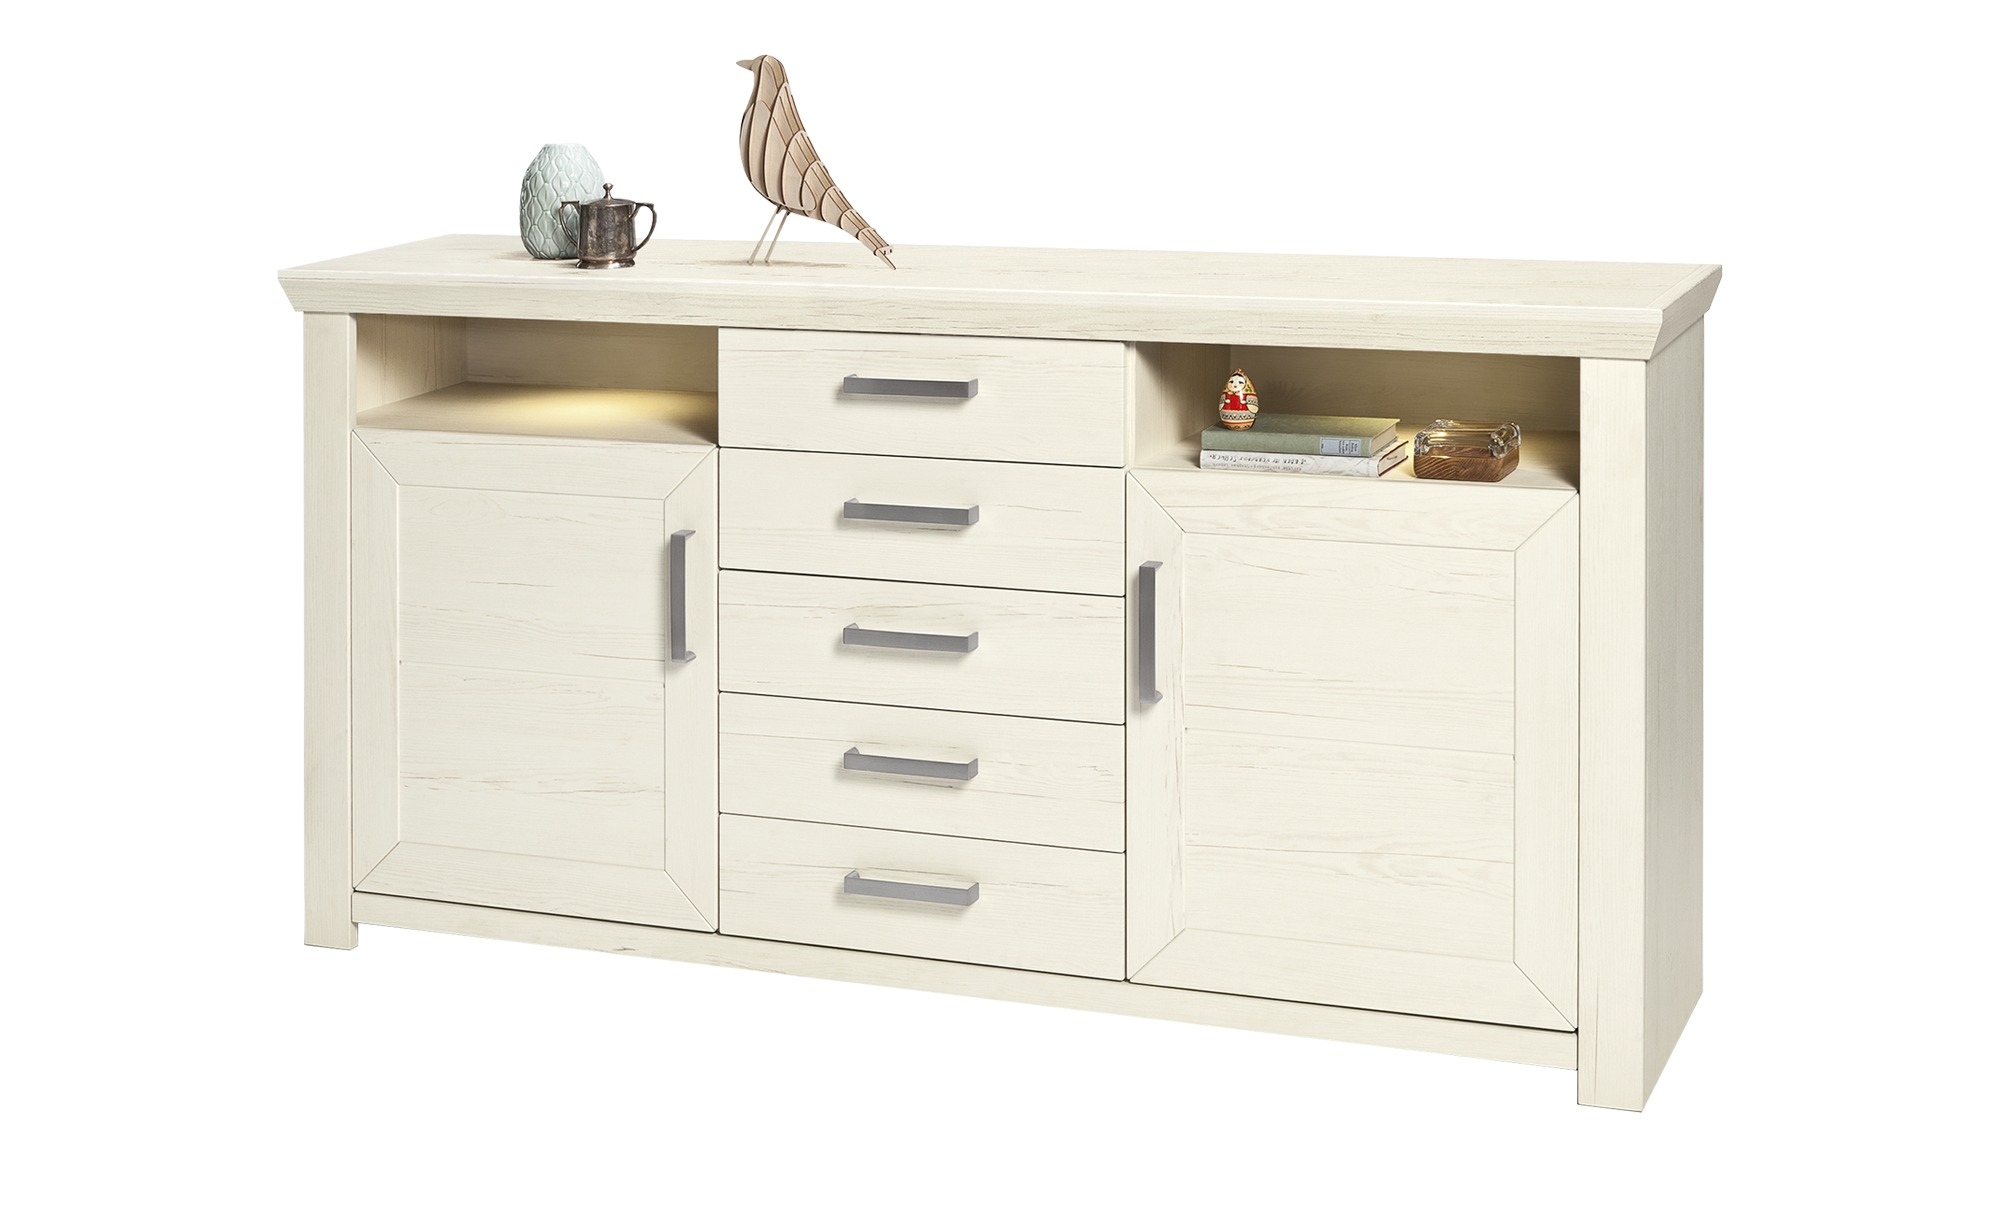 Set One By Musterring Sideboard York Jetzt Bestellen Unter Https